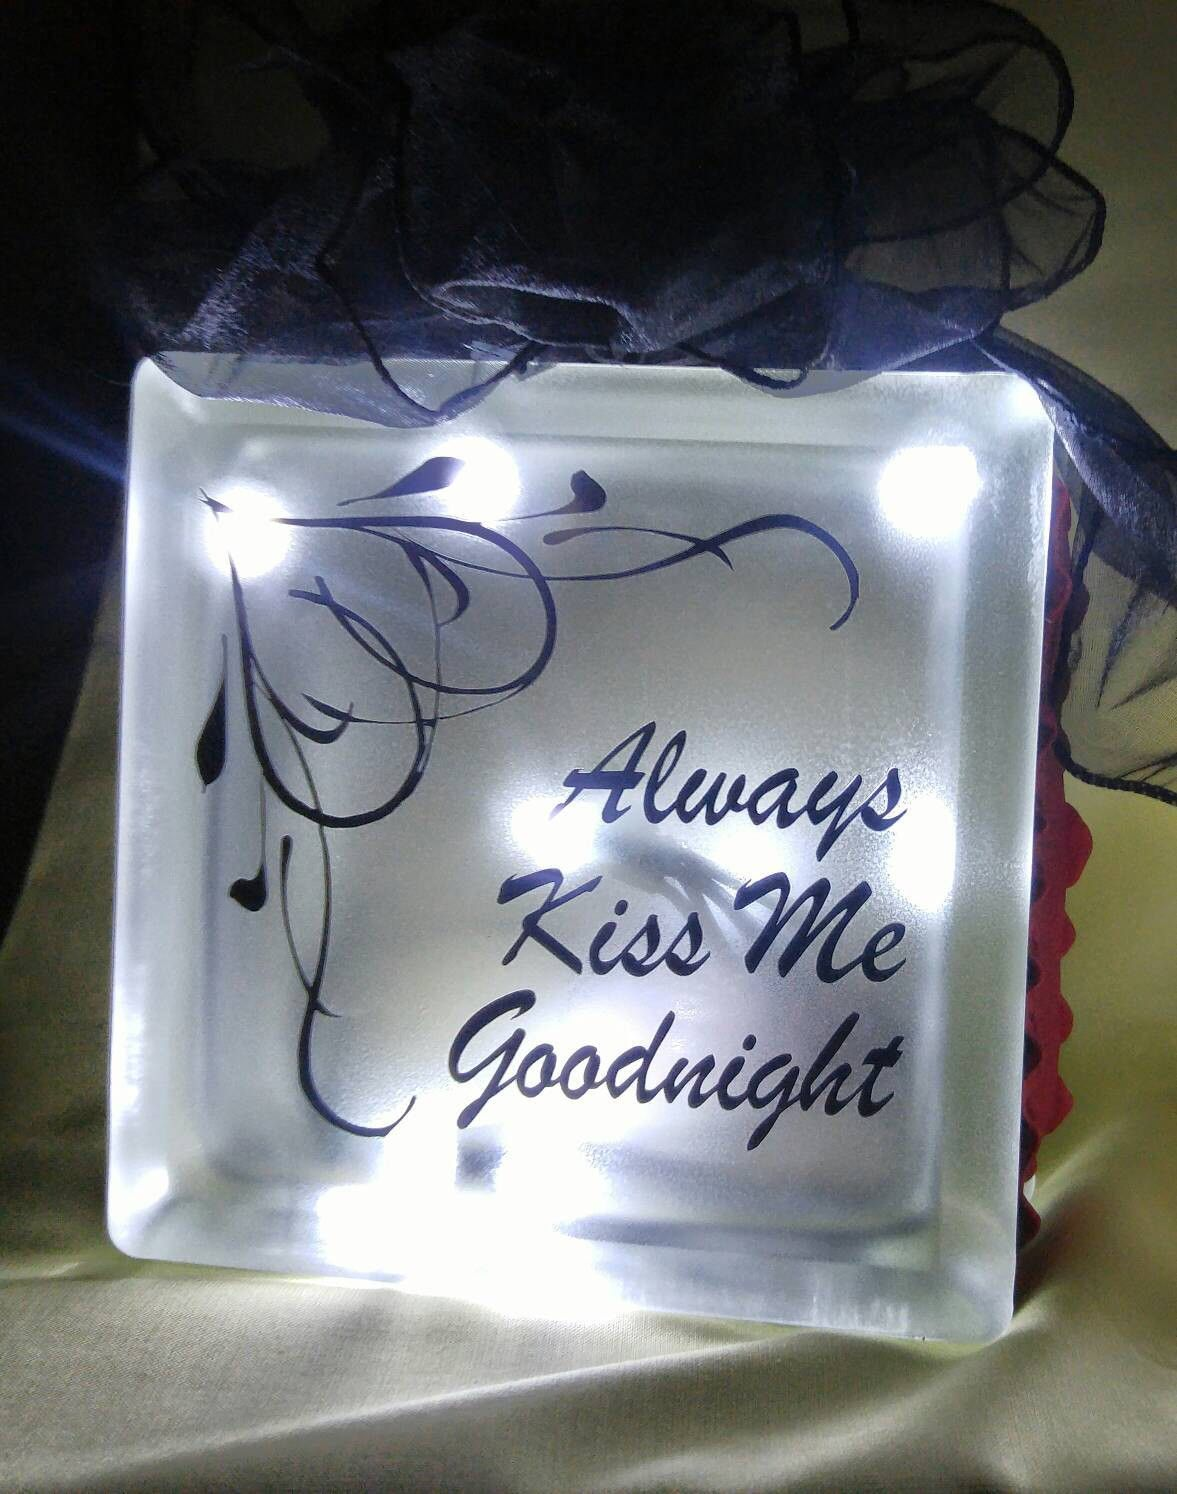 Always Kiss Me Frosted Lighted Glass Block Night Light Girl Friend Gift Wife Anniversary